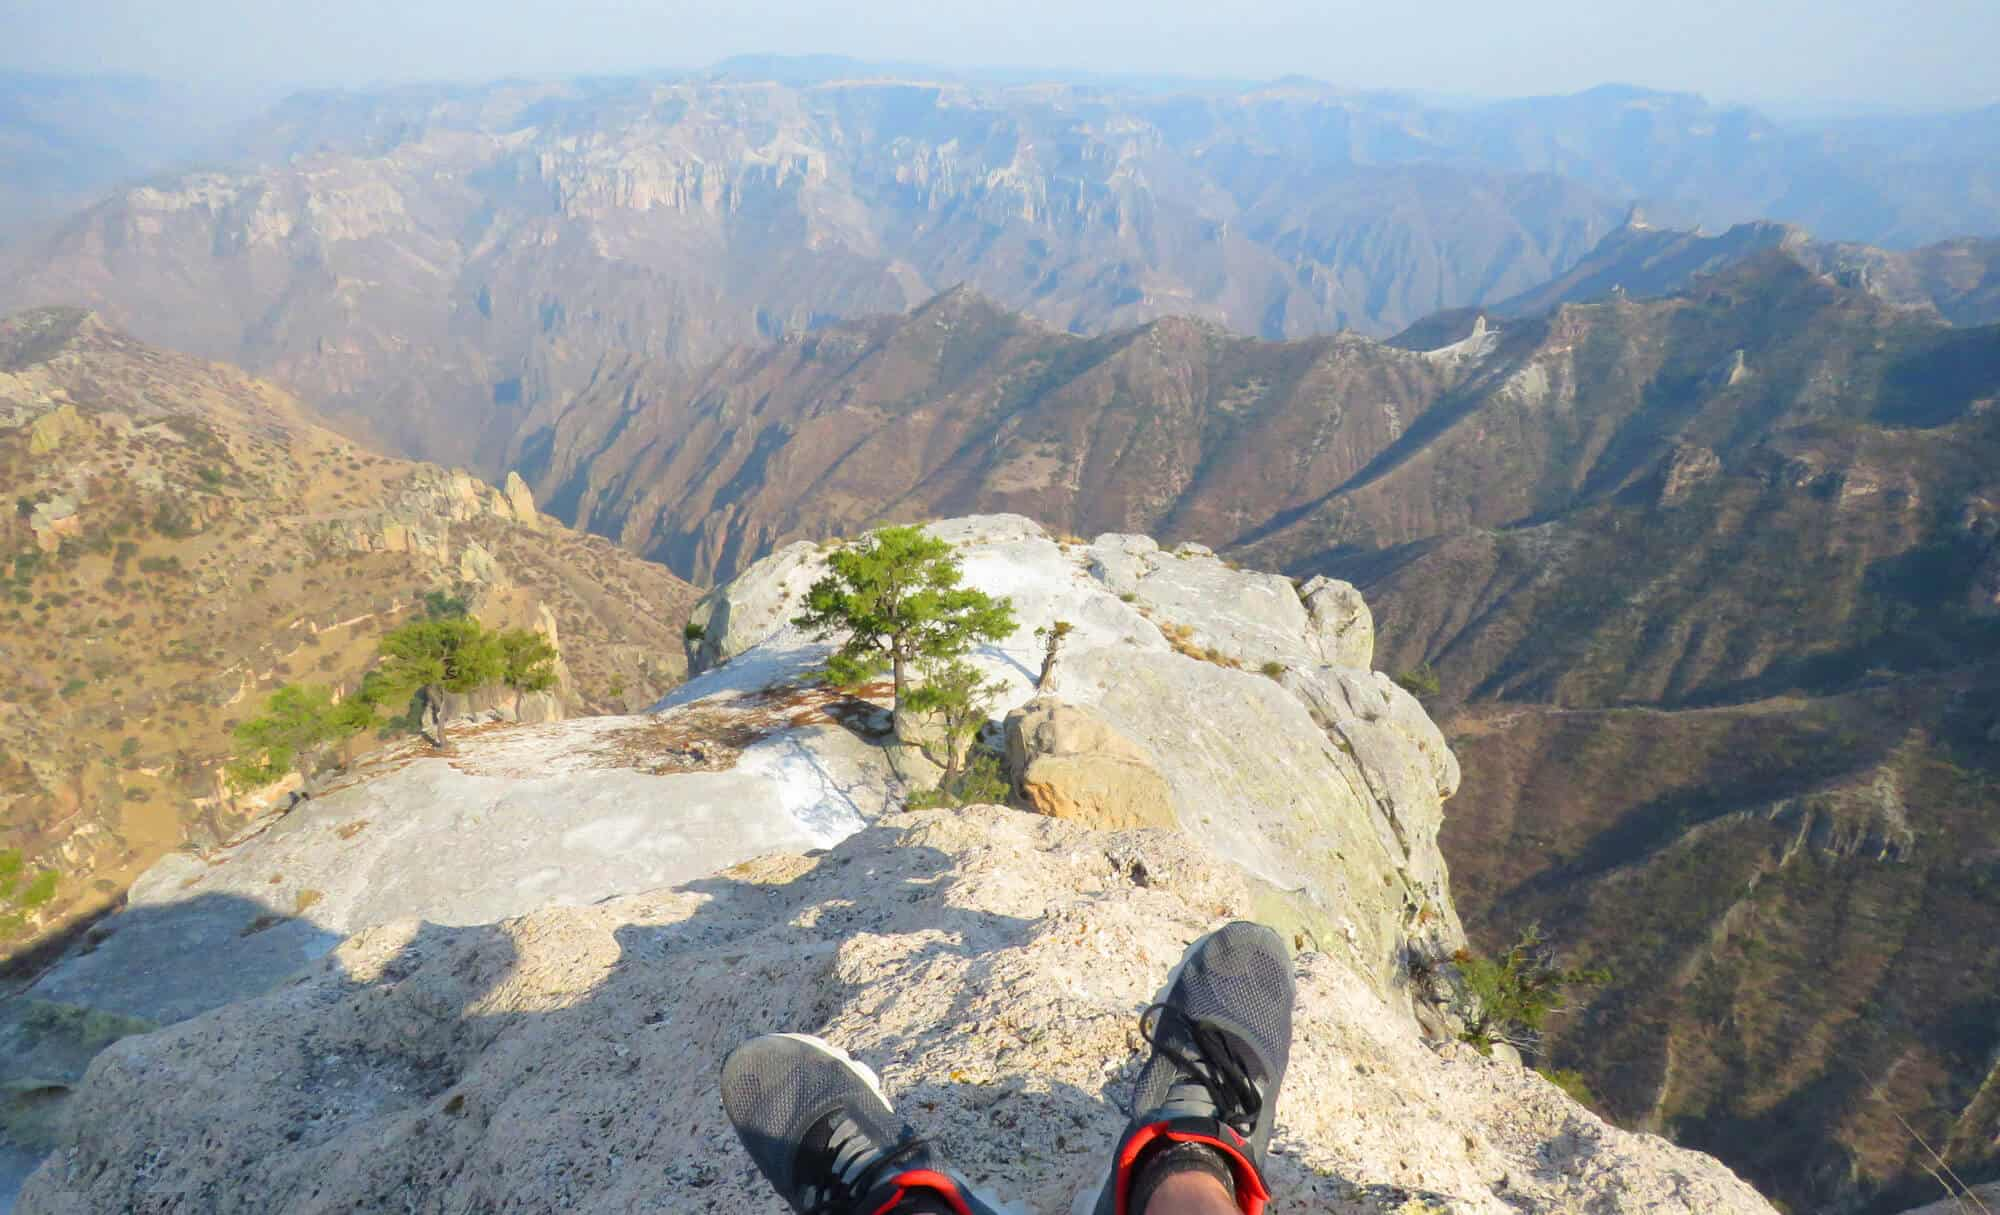 hiking and views of the copper canyon, Mexico